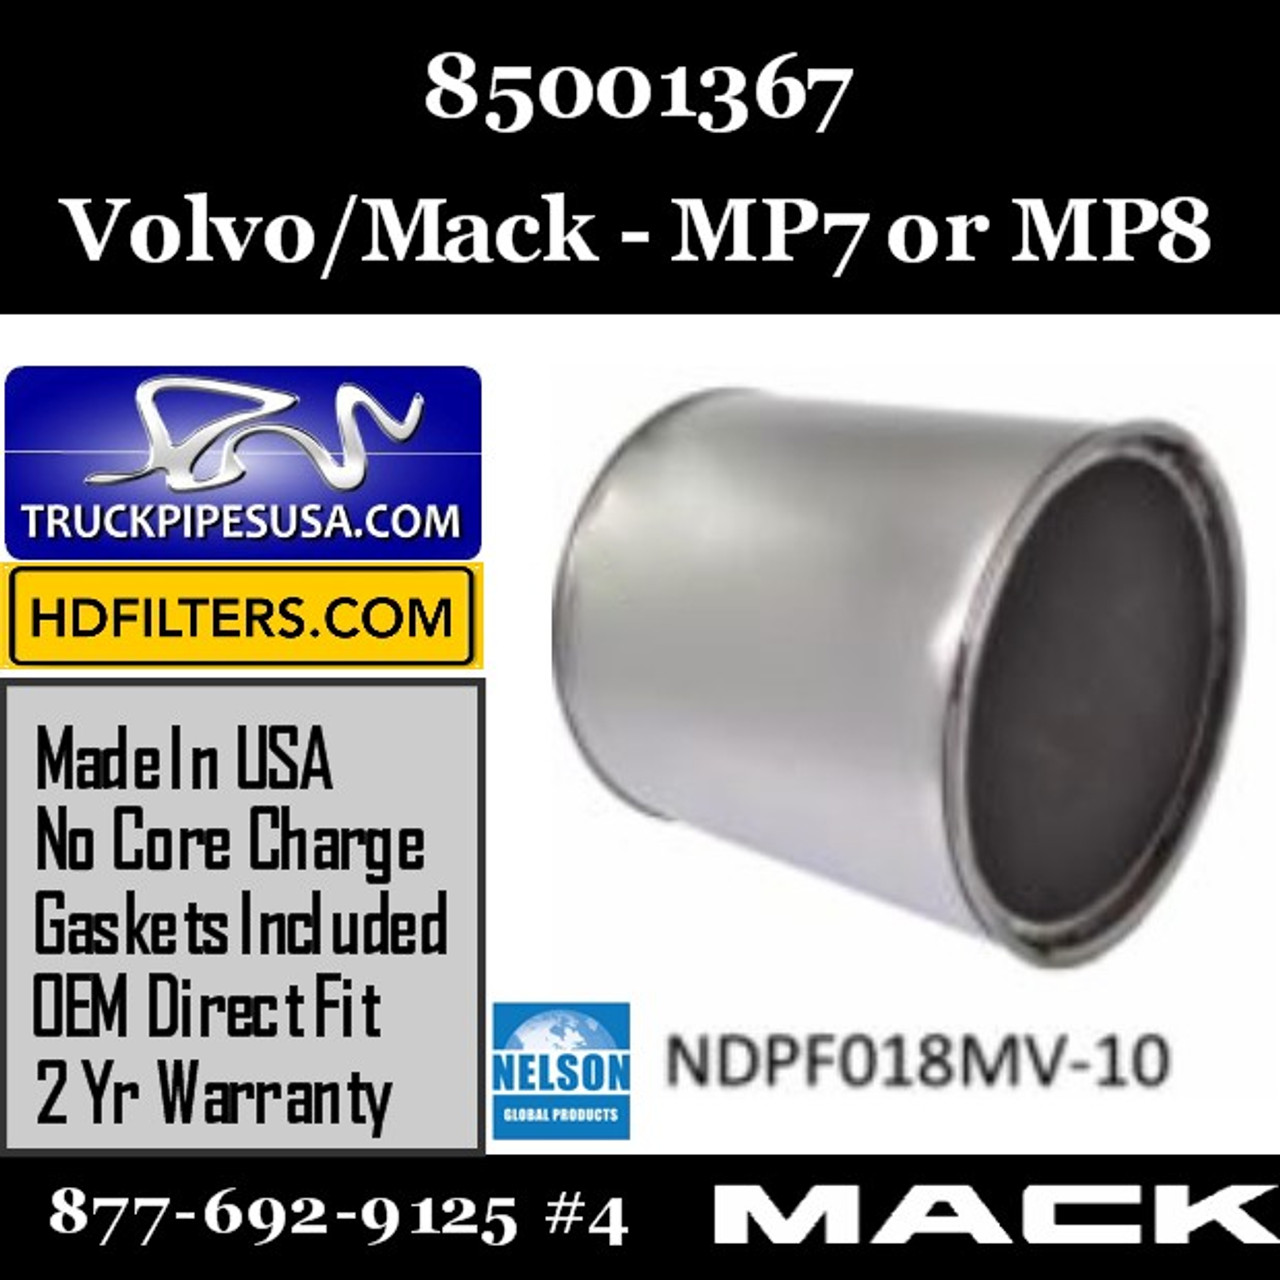 85001367 Volvo Mack DPF For MP7 Or MP8 Engine